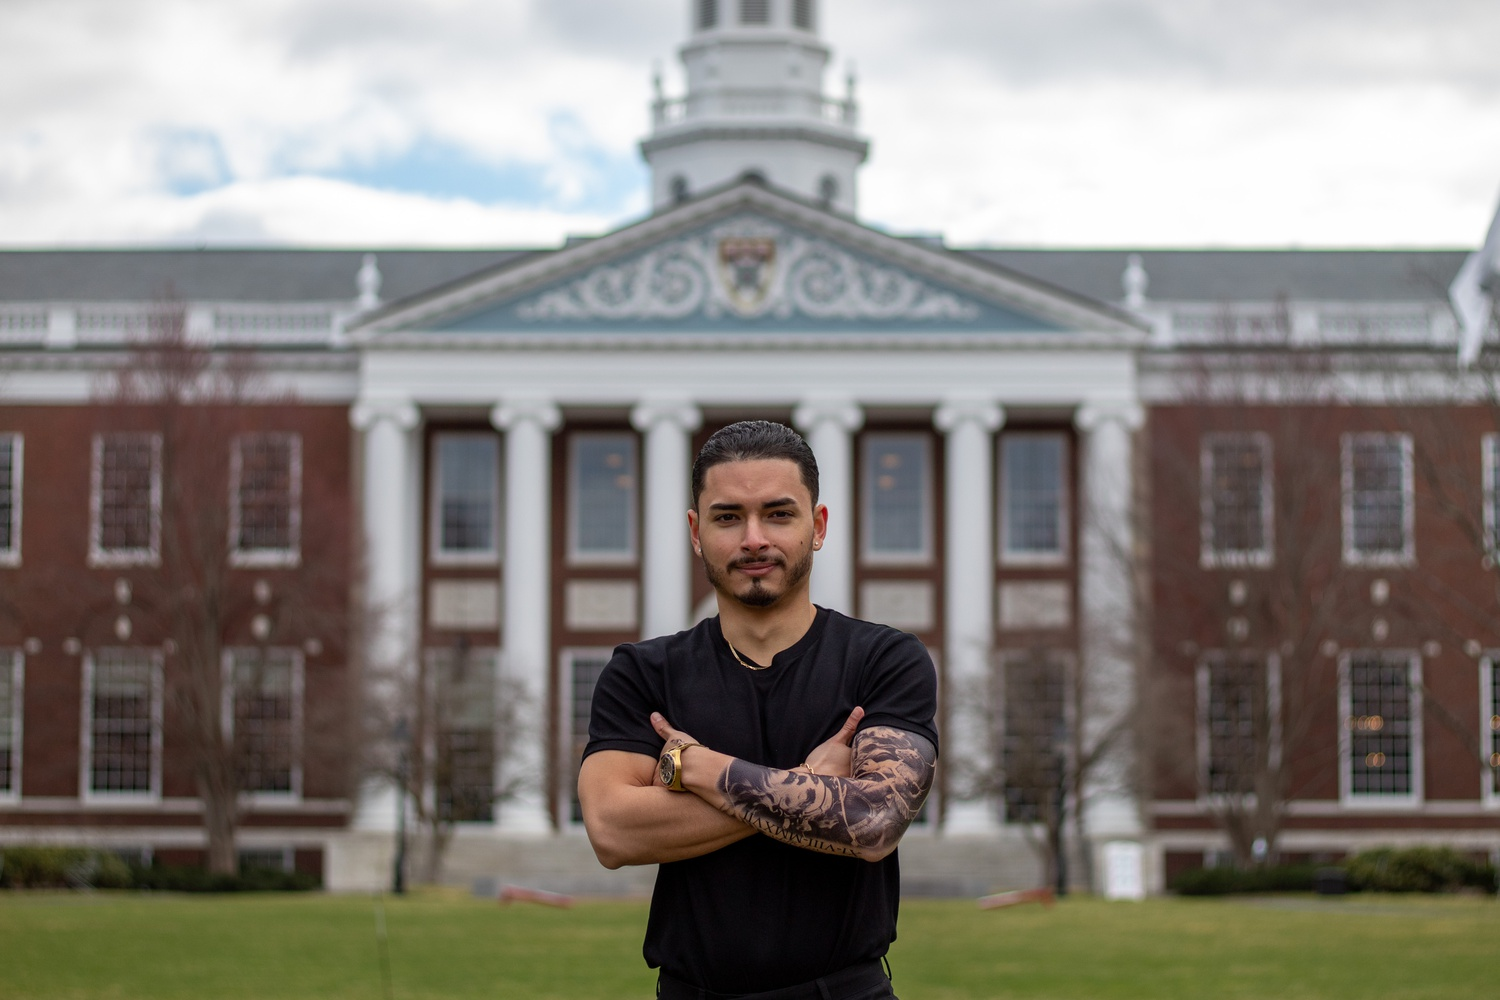 Juan S. Cardenas-Duque is a Harvard University Dining Services employee, a student at Harvard Extension School, and an entrepreneur.